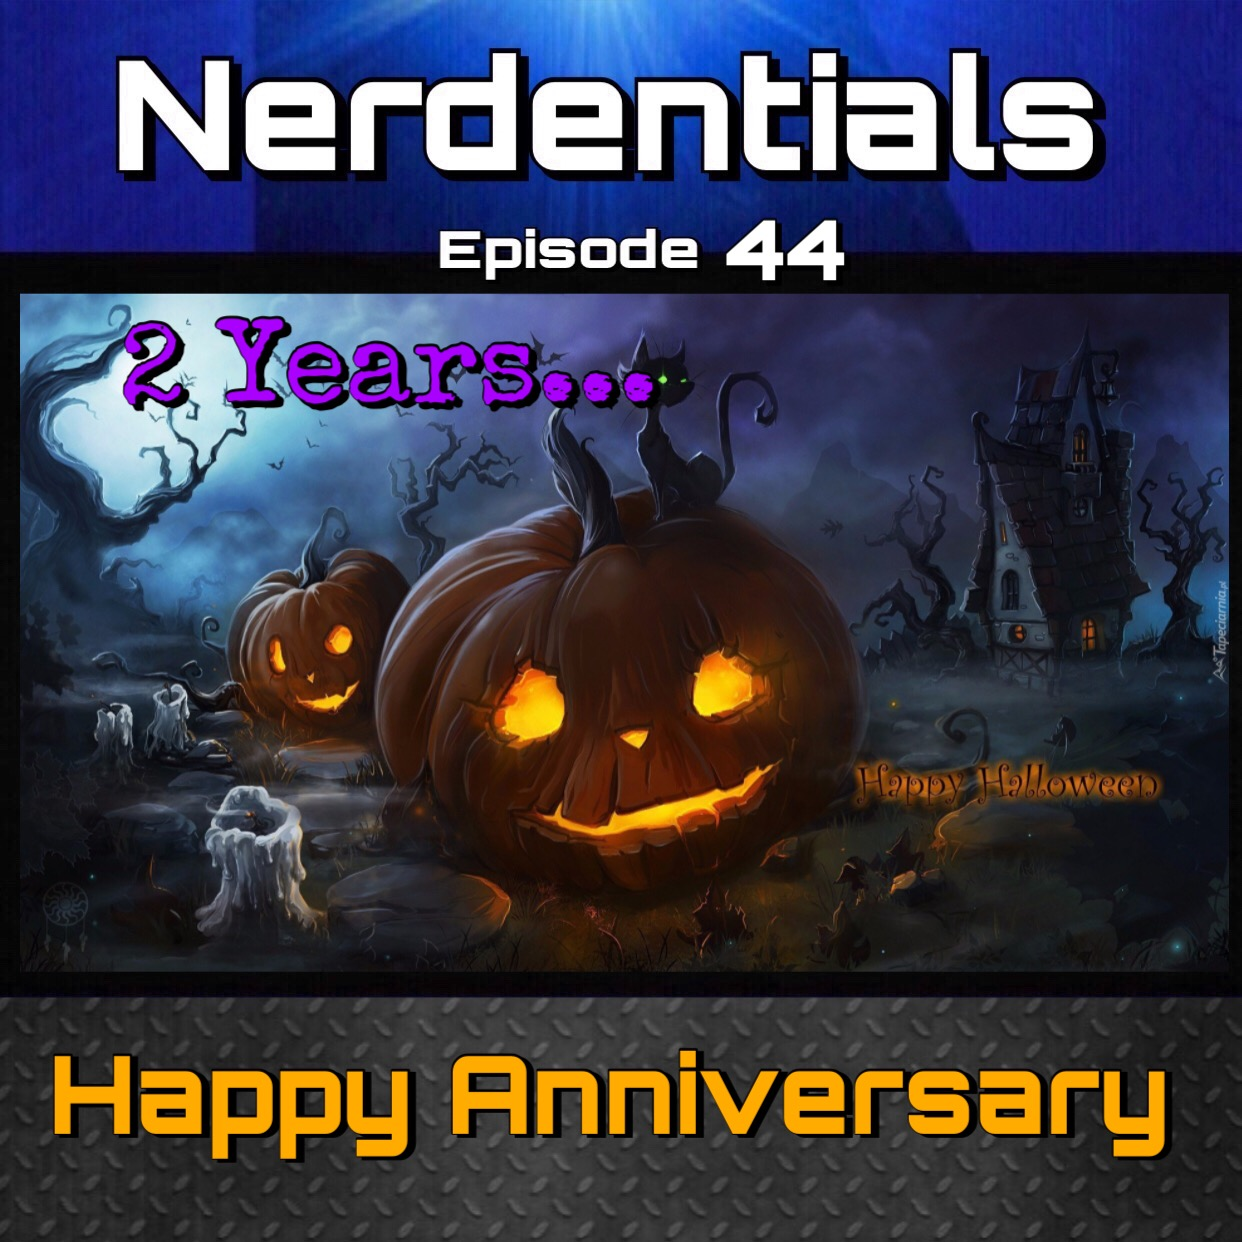 - Welcome to Nerdentials! Your weekly dose of the nerdy essentials. Covering Film, TV, Video Games and Comics.This Week your hosts Joe, Matt and Lynn engage you with some nerd history the explains why we are the nerds we are today...Then We kick back some nostalgia by reminiscing over our favorite moments with the nerd crew over the last 2 years!Enjoy!